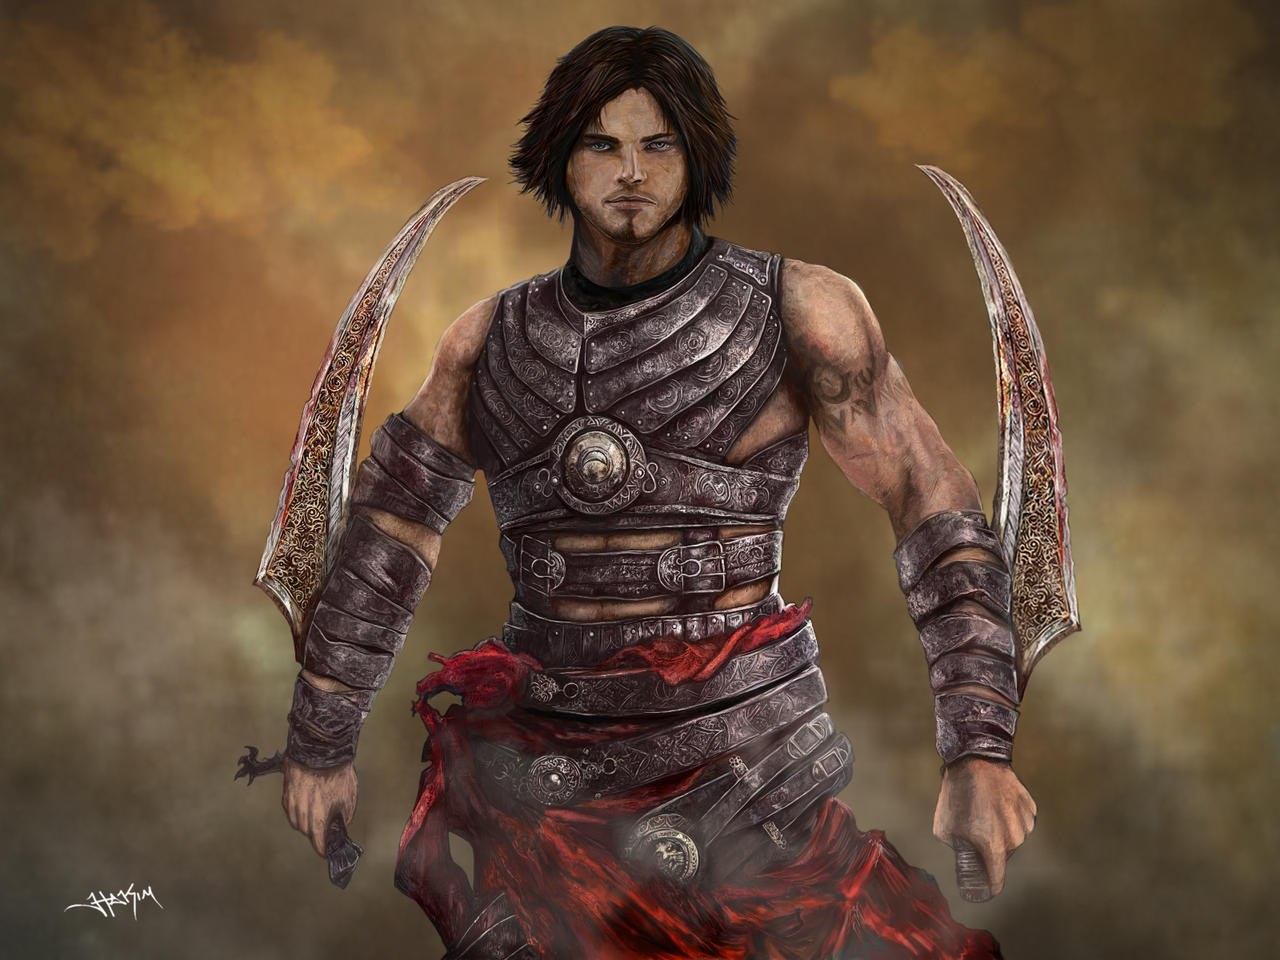 The Prince of Persia Digital Painting by Hax09